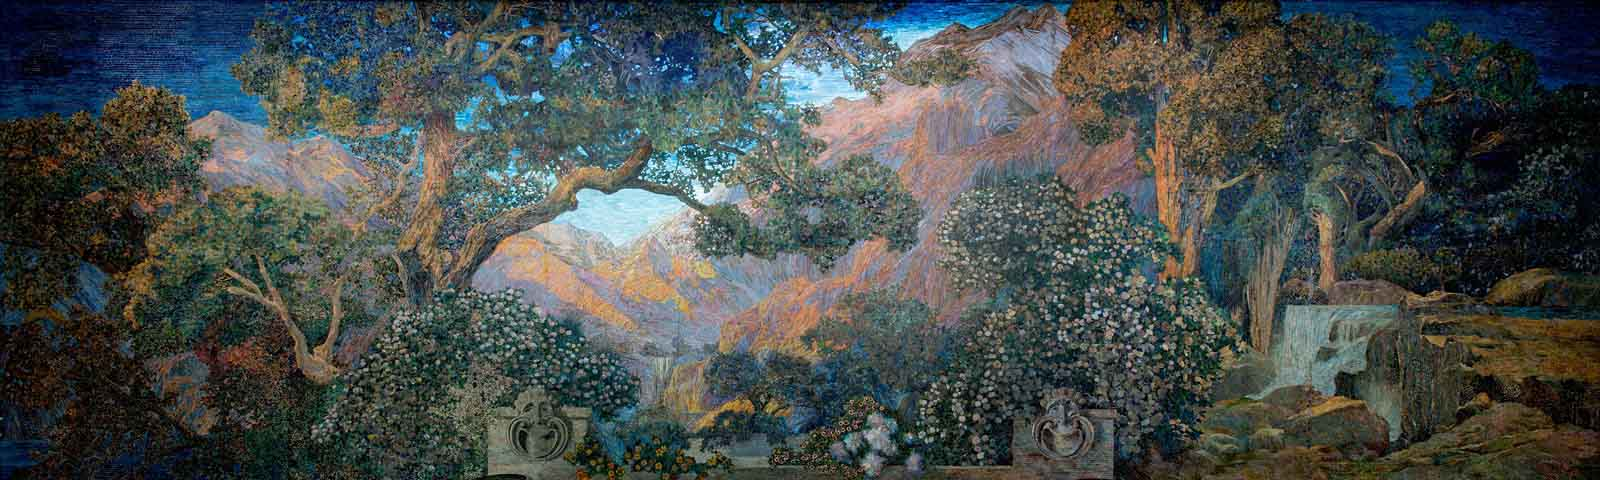 Mural, The Dream Garden, 1916. Tiffany Studios.